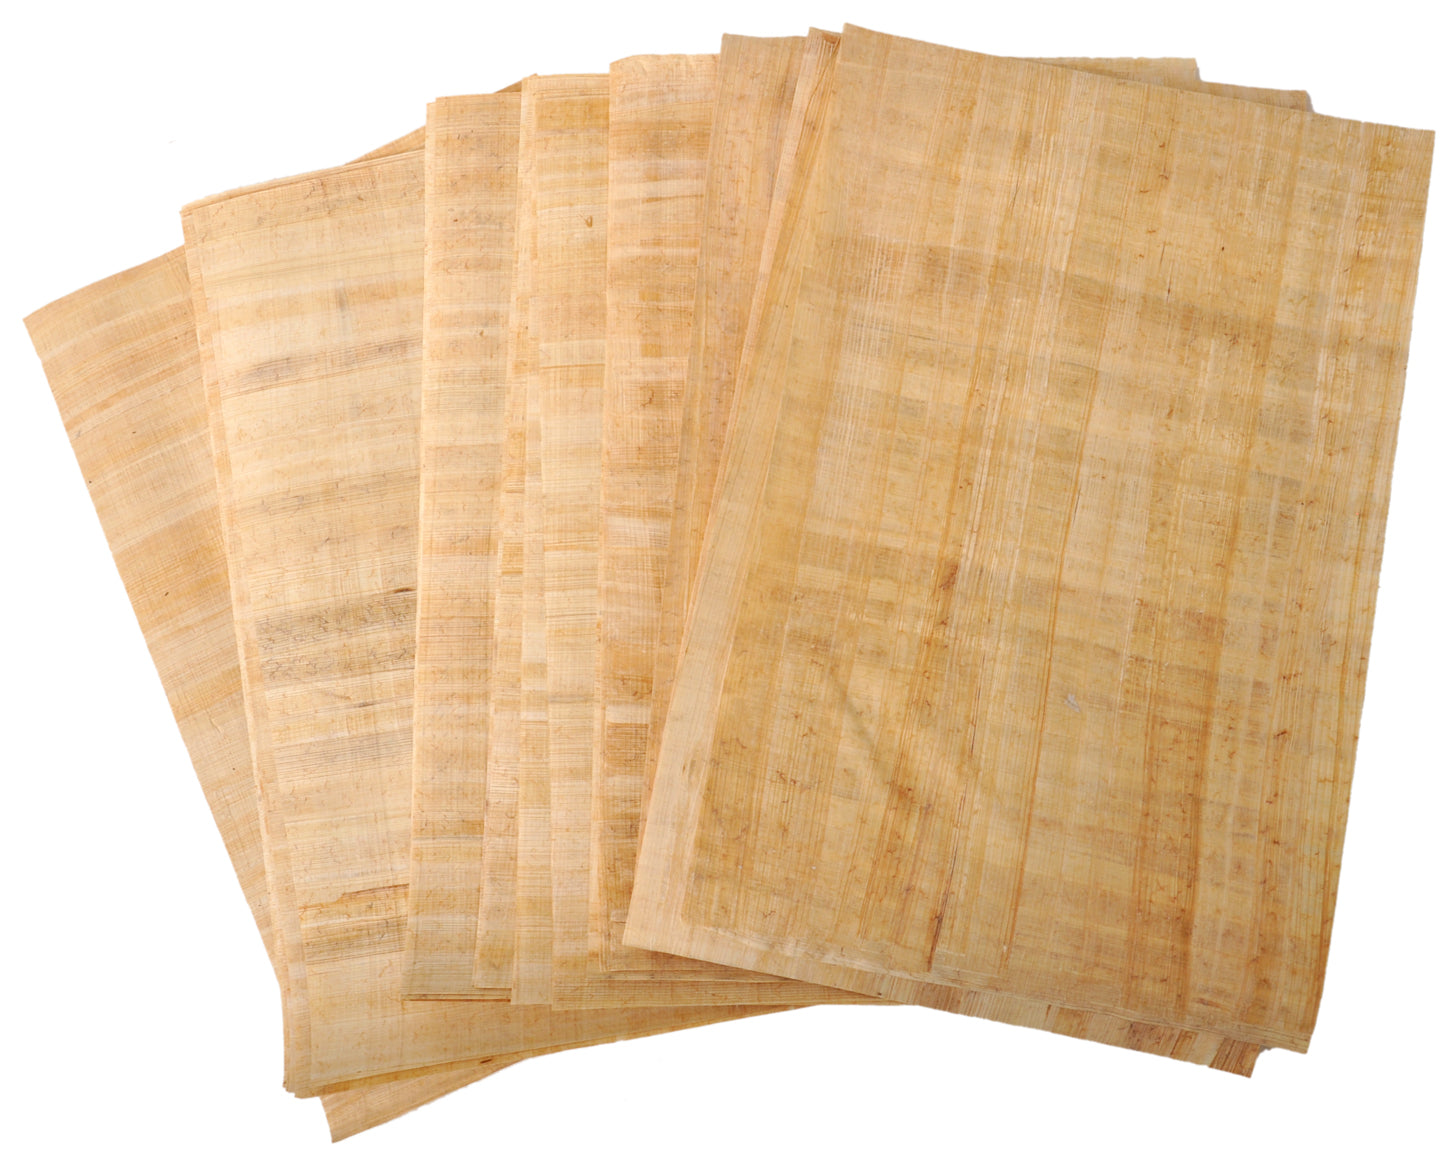 Set 10 Egyptian Papyrus Paper 4x6 inch (10x15 cm) - Ancient Alphabets Papyrus Sheets-Papyri for Art Project, Scrapbooking, And School History